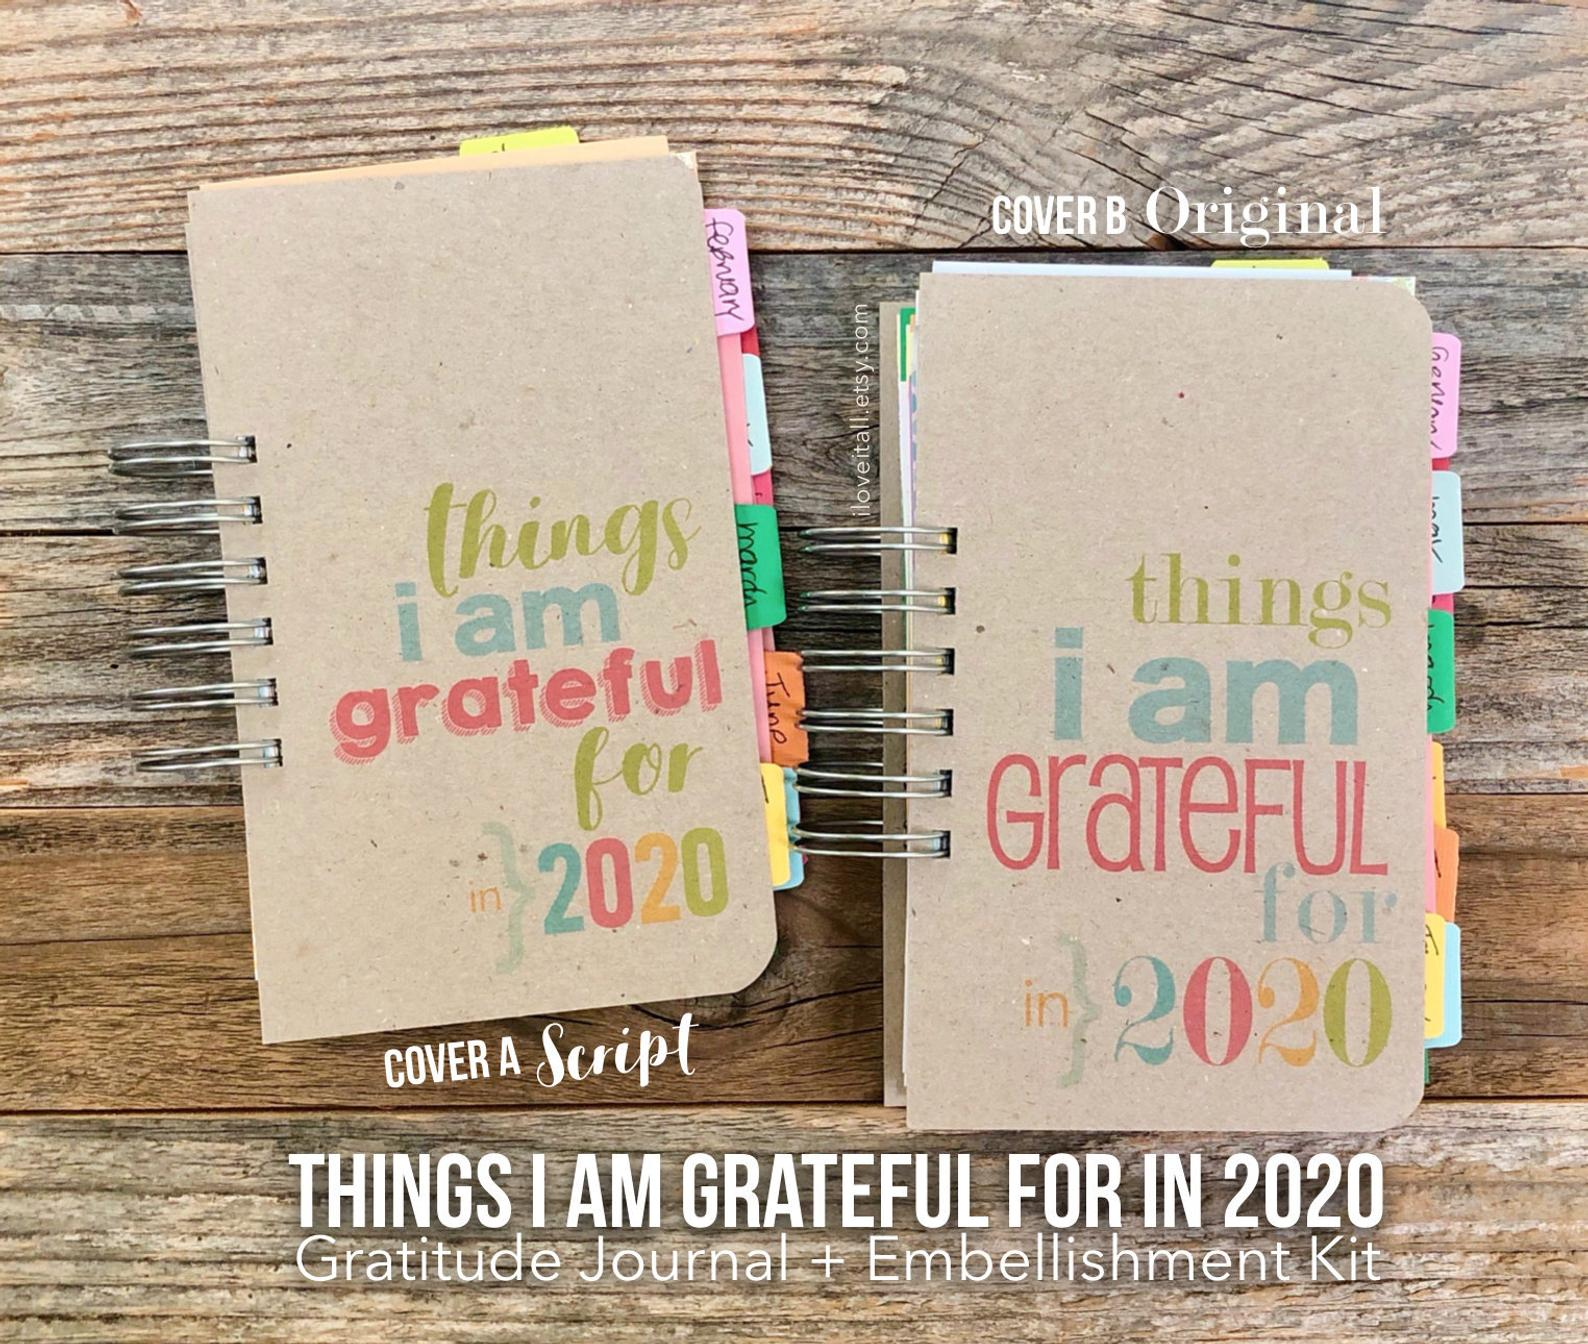 #Gratitude Journal #gratitude #grateful #travelers notebook #ilovethursdaythanks #positivity #mindfulness